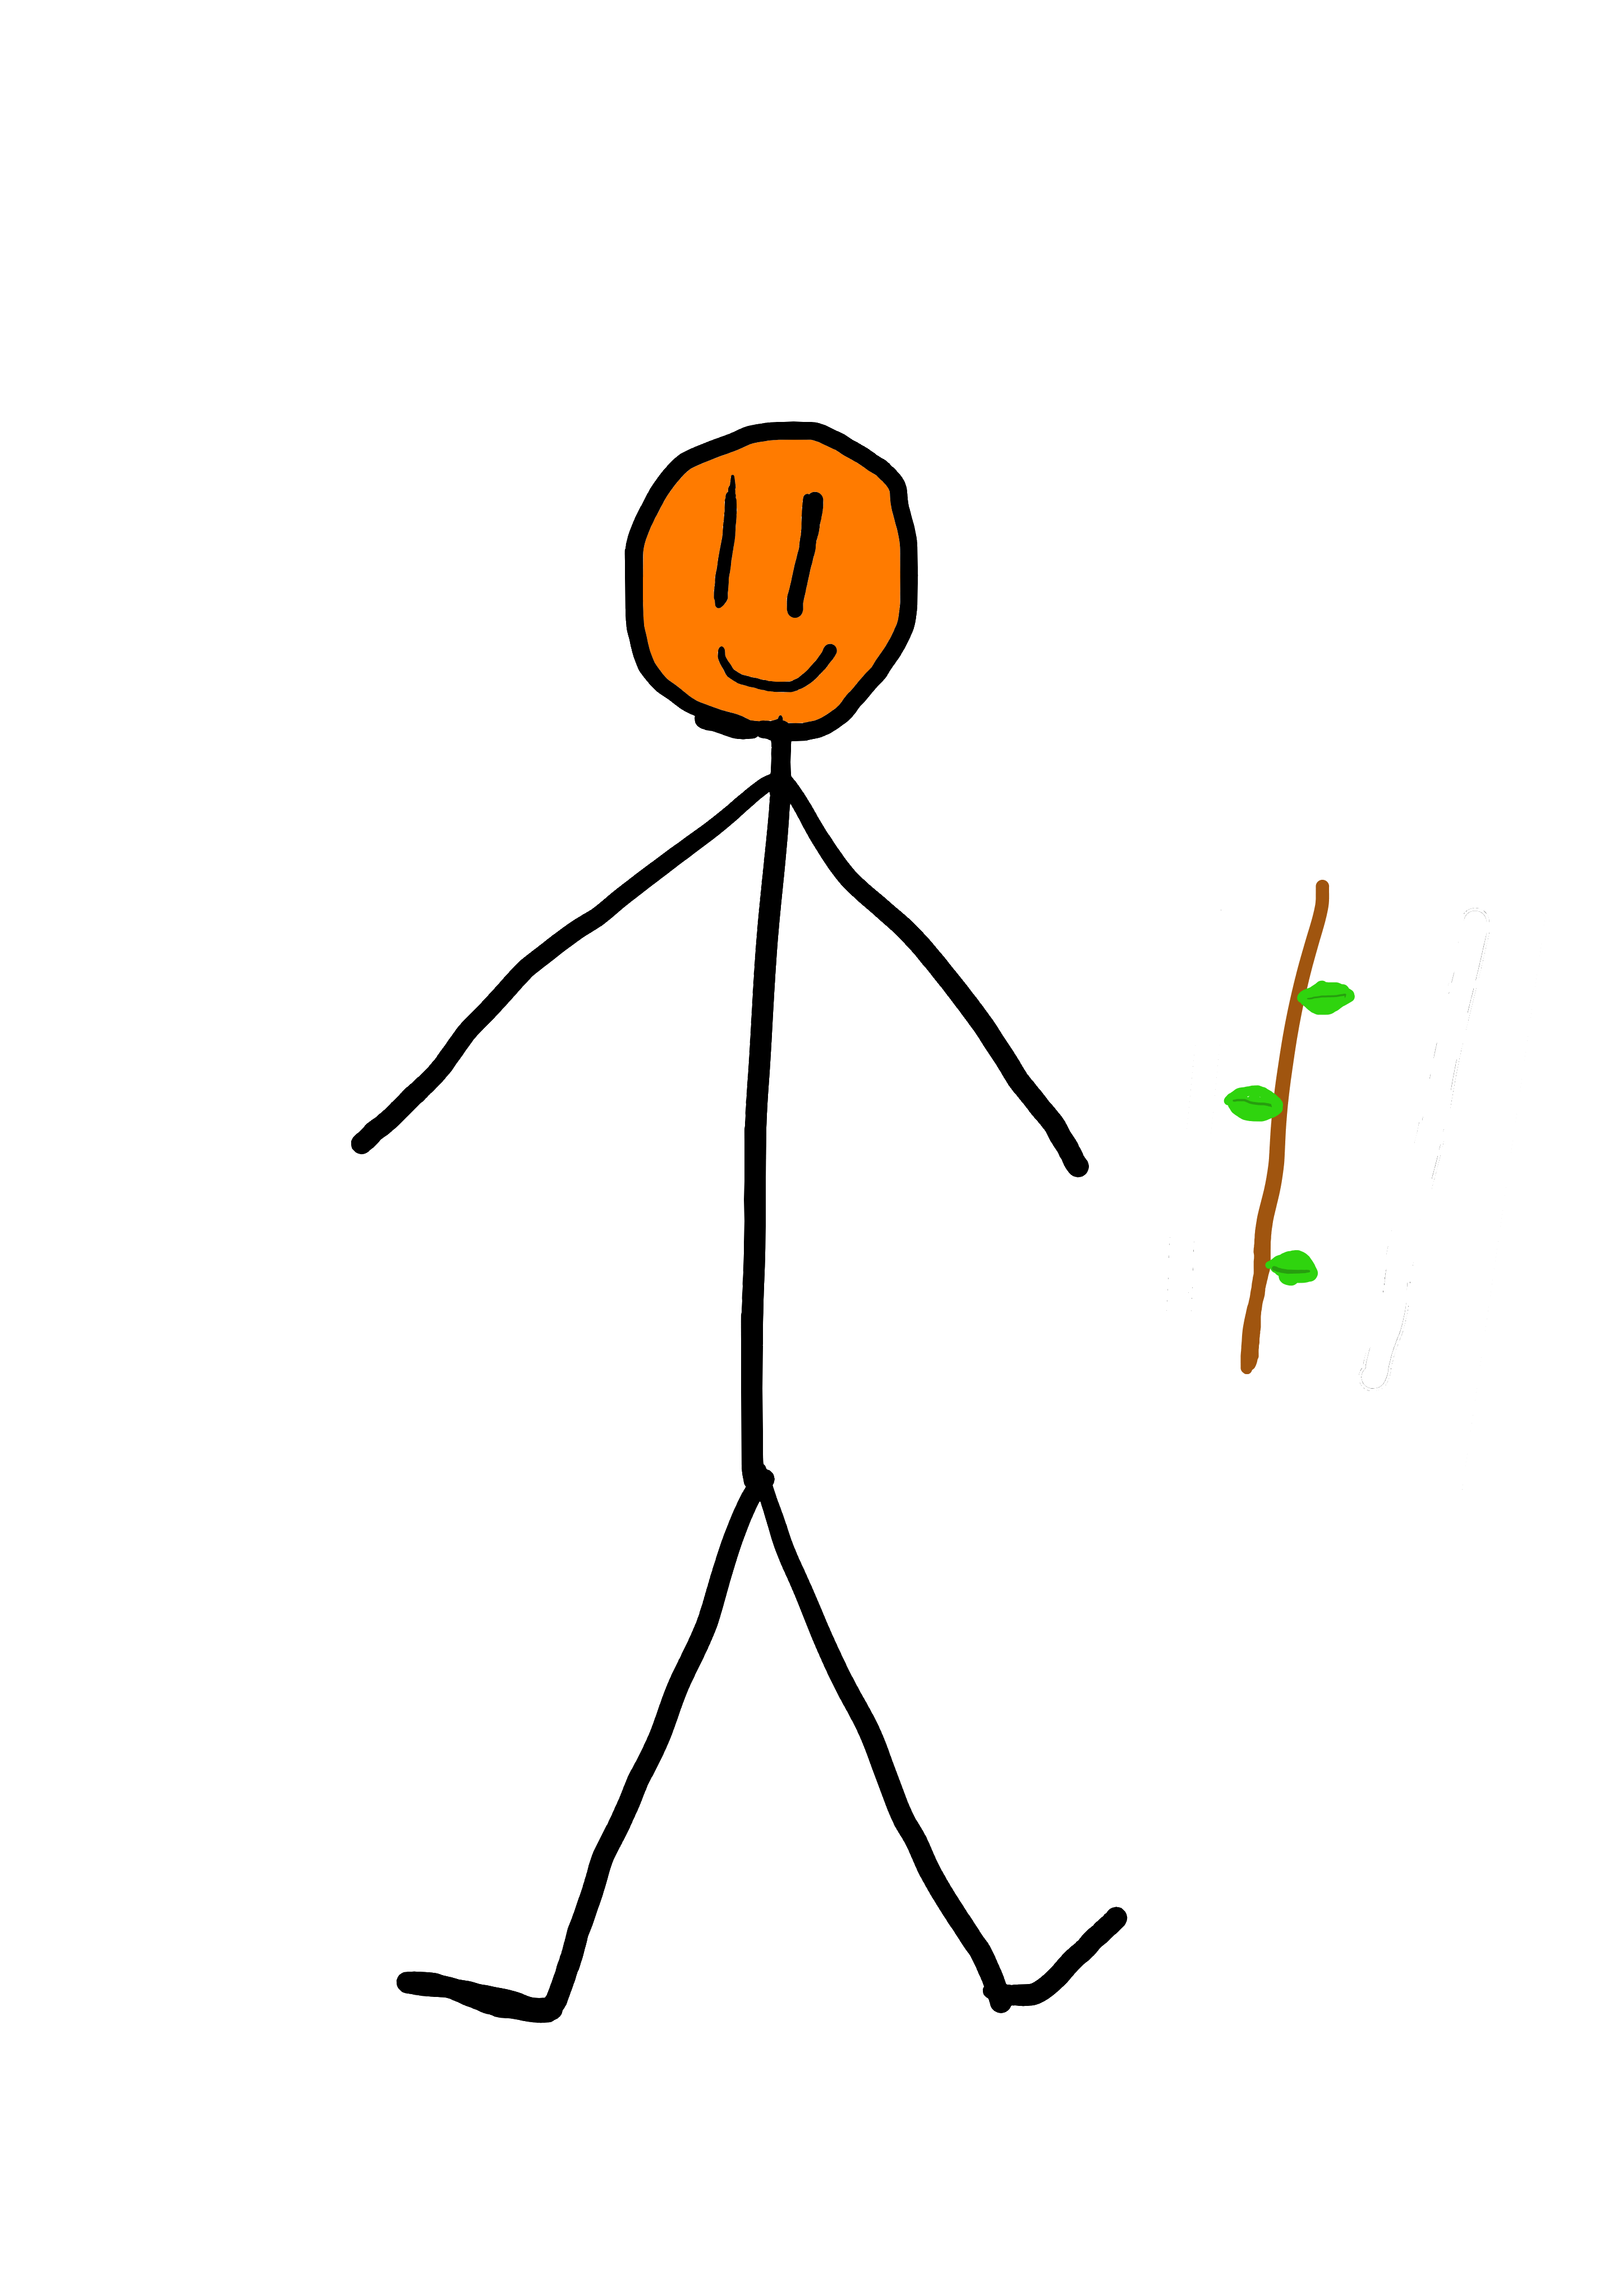 My first drawing